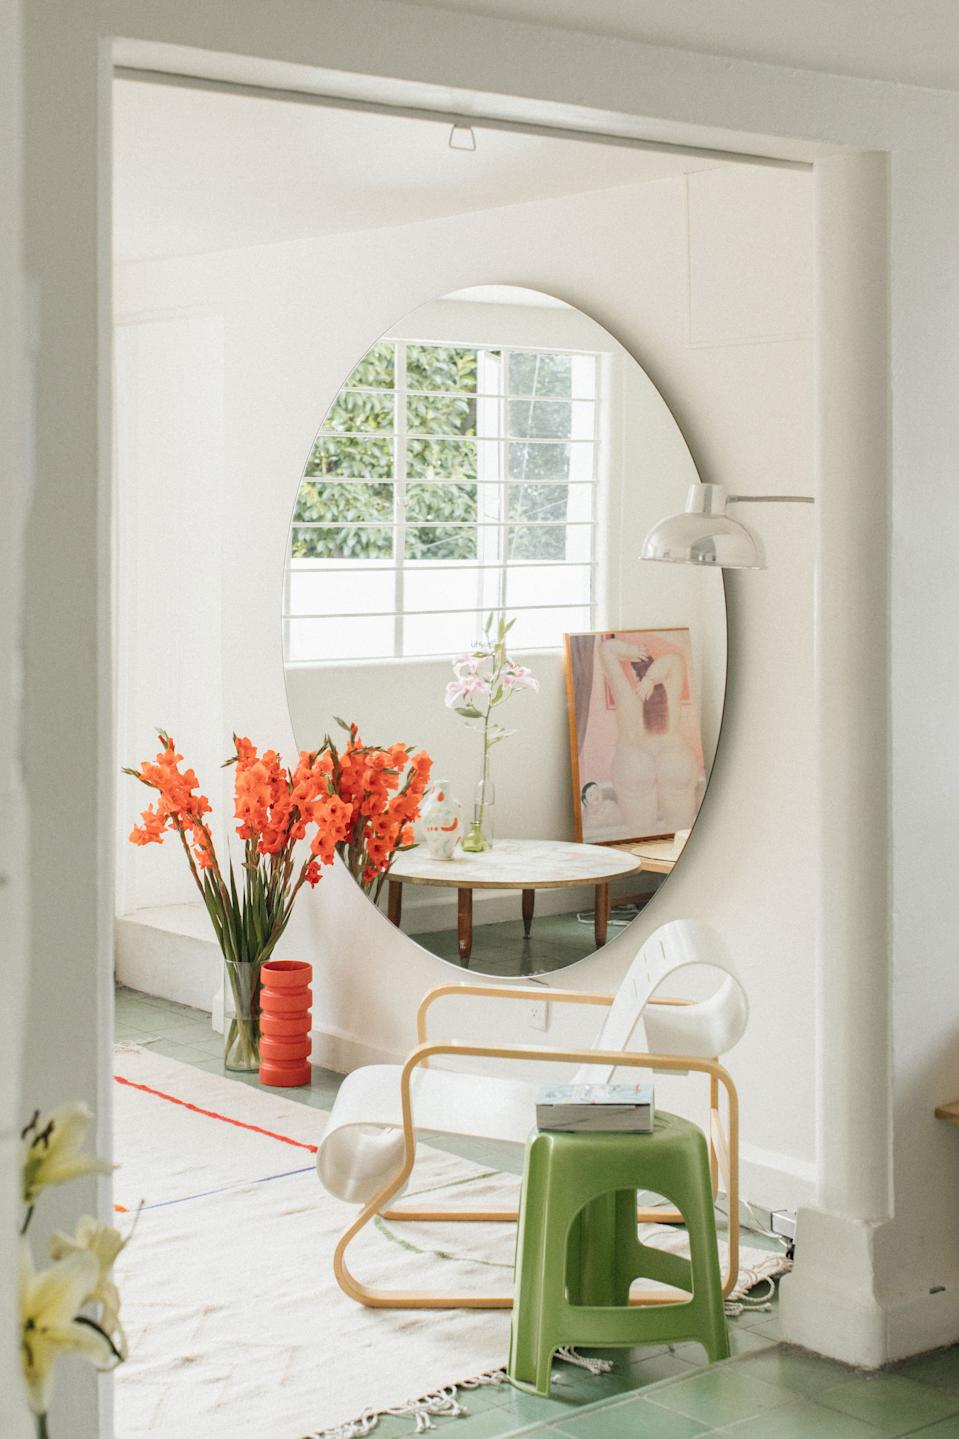 """<div class=""""caption""""> """"The white chair is the <a href=""""https://www.chairish.com/product/2358313/armchair-41-paimio-in-birch-and-white-by-alvar-aalto-artek?gclid=EAIaIQobChMIrJel0fPh6gIVF8DICh3cgwvGEAQYAyABEgKPP_D_BwE"""" rel=""""nofollow noopener"""" target=""""_blank"""" data-ylk=""""slk:41 by designer Alvar Aalto"""" class=""""link rapid-noclick-resp"""">41 by designer Alvar Aalto</a>. It is a gift from a friend who saw it as a nice reference to our collection —the roundness of the forms and purity of the lines,"""" says Charles. """"It is one of the first creations of the Finn, one of the pieces that makes it known, so it is a supportive message for young designers like us."""" </div>"""